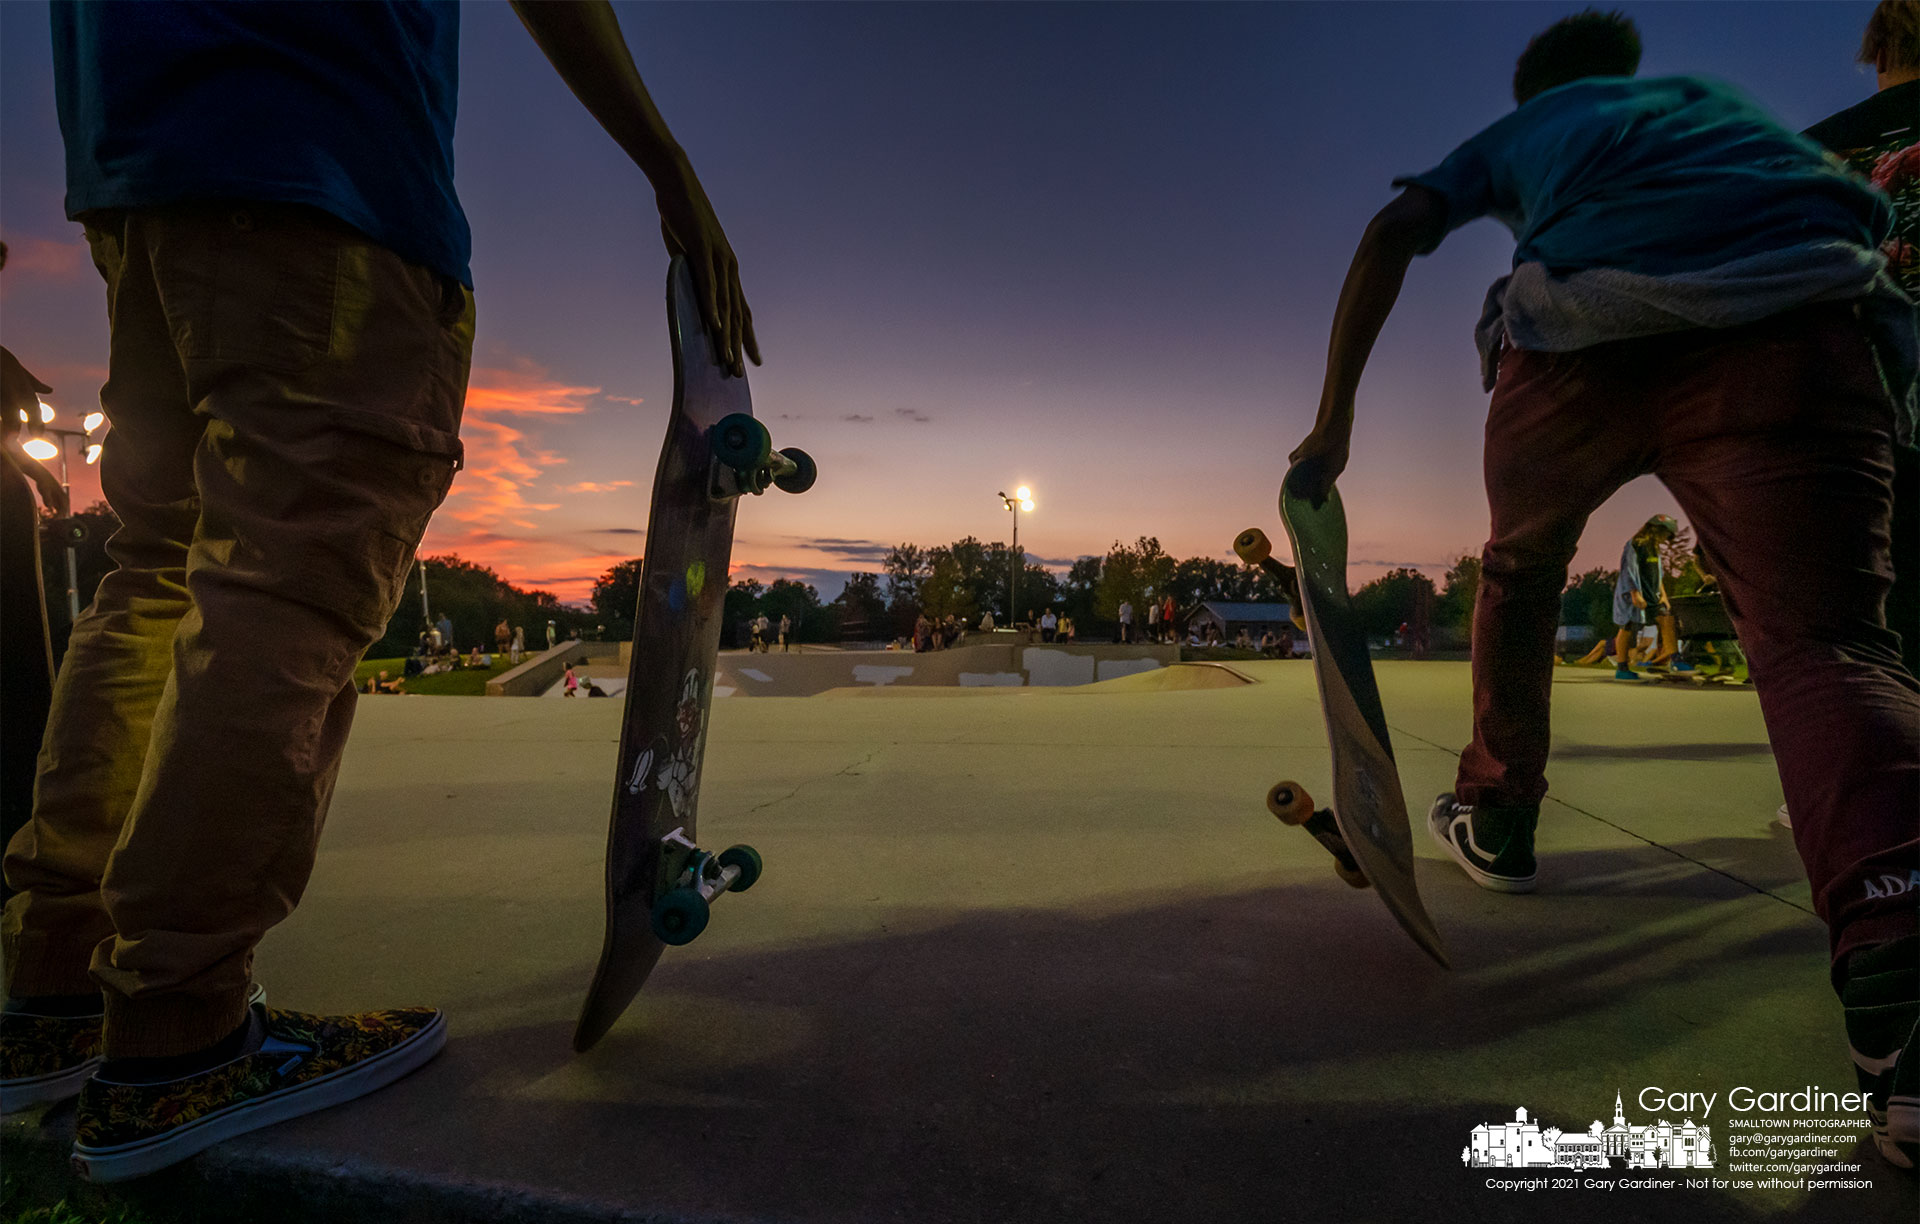 """A skater launches himself toward the Westerville Skate Park during """"Skate Late,"""" an evening of skating under lights at the skate park. My Final Photo for Sept. 18, 2021."""